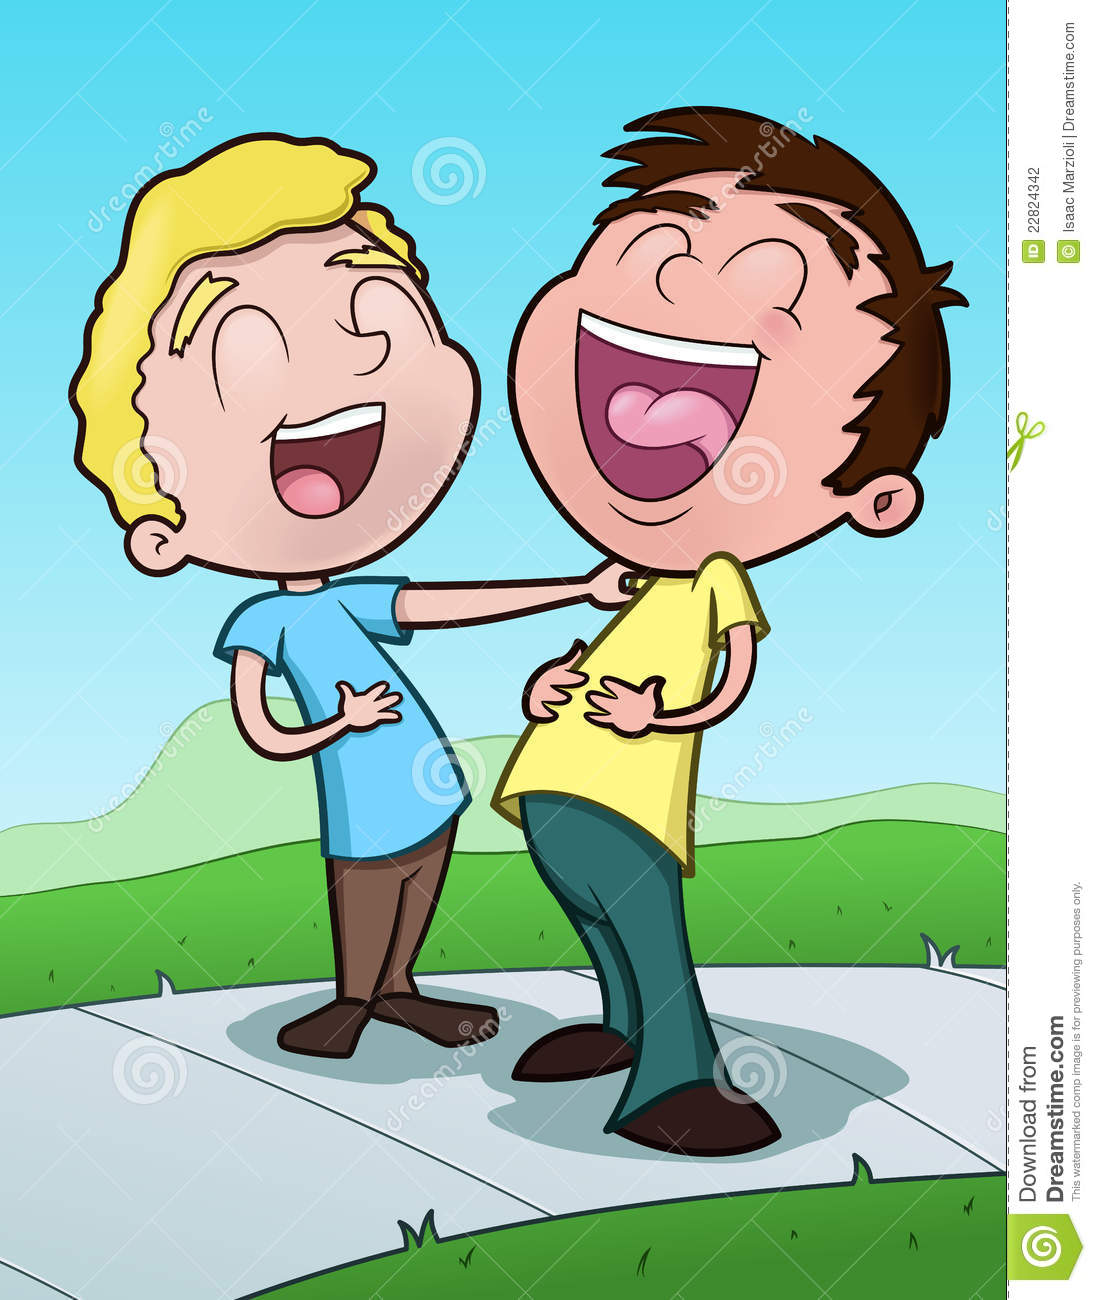 Kids Laughing In Class Clipart.